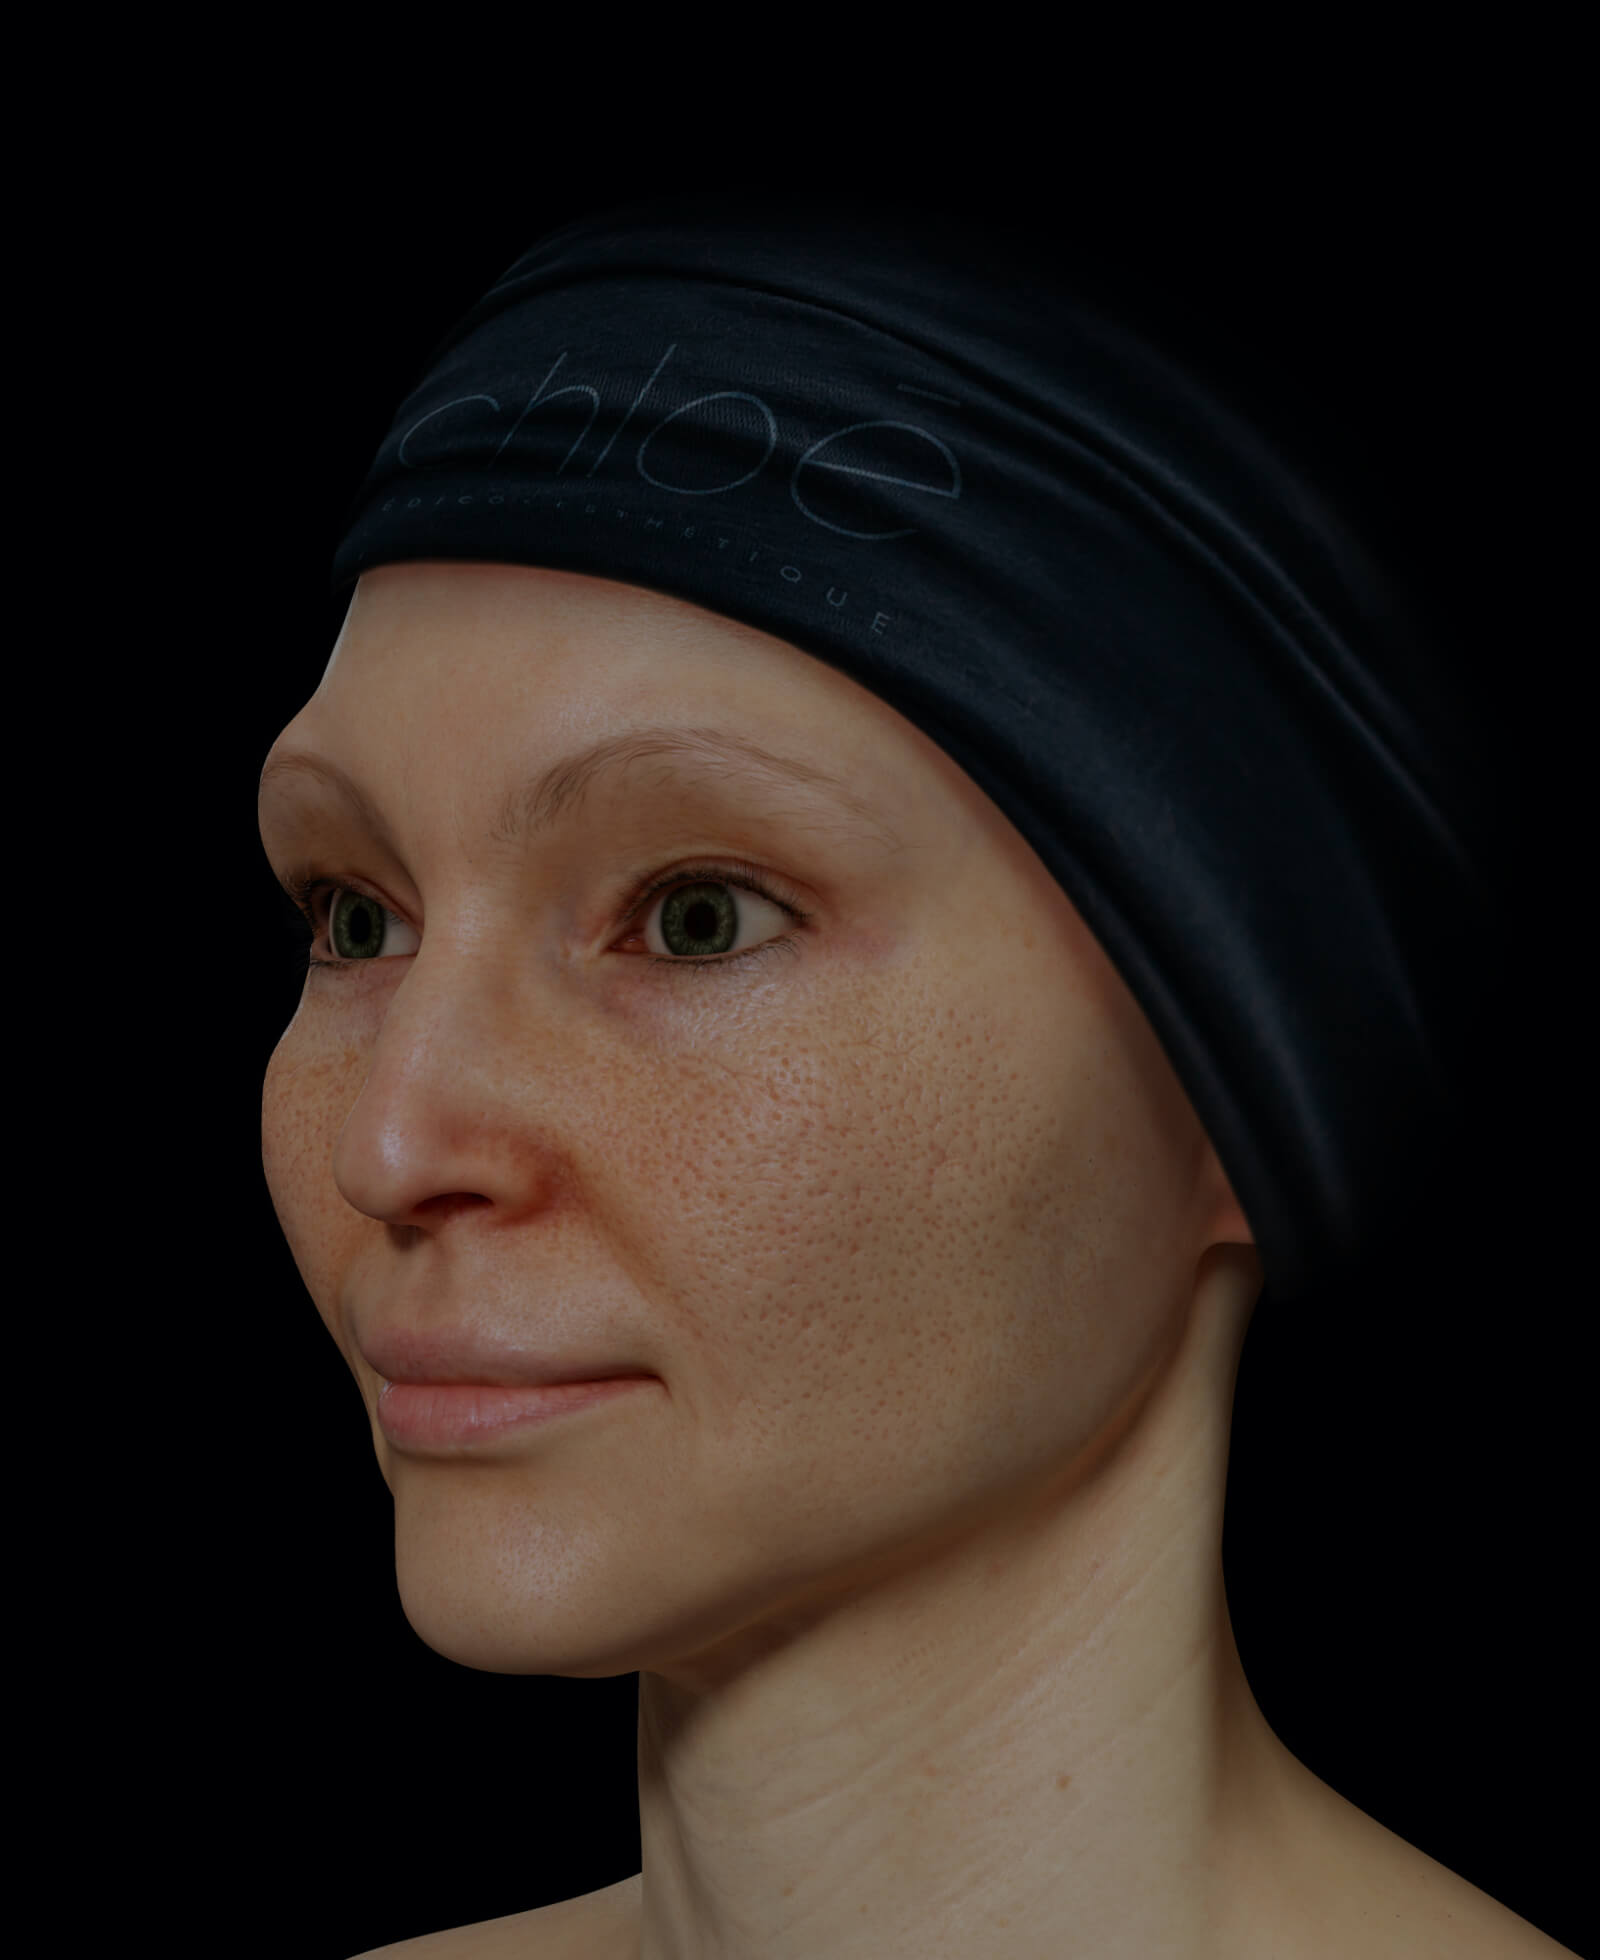 Female patient at Clinique Chloé with dilated pores on the skin of her face